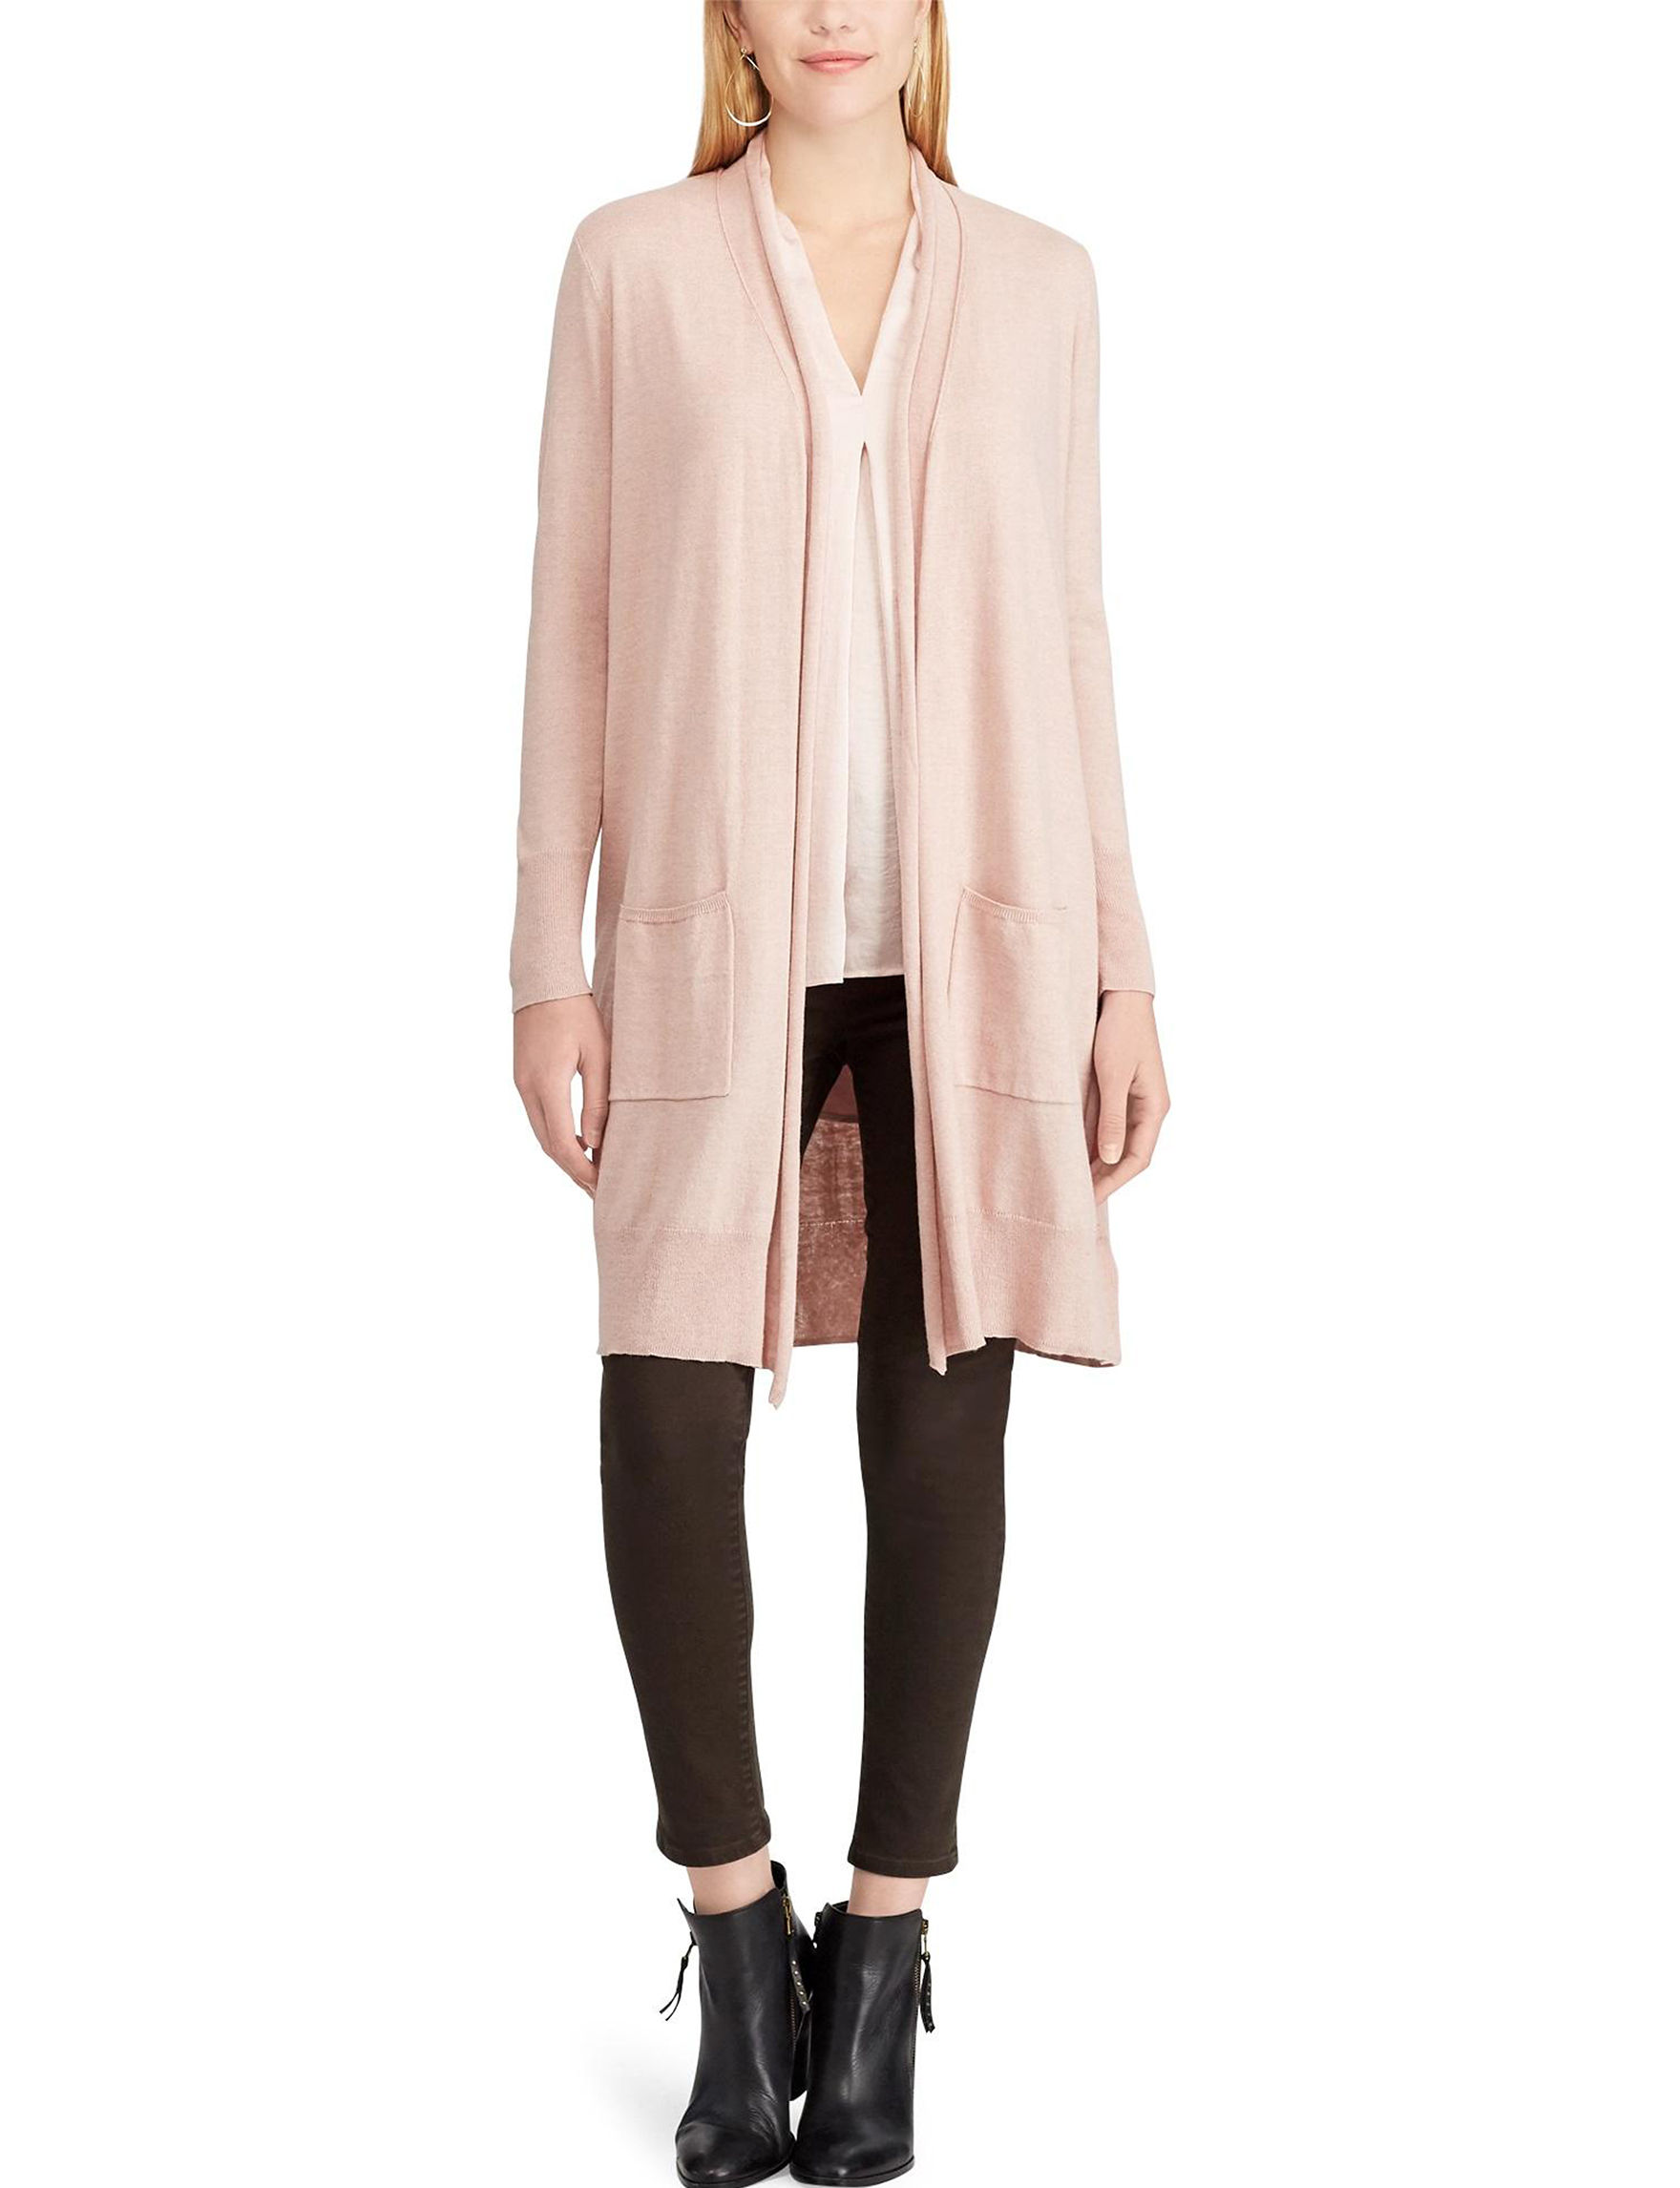 Chaps Pink Cardigans